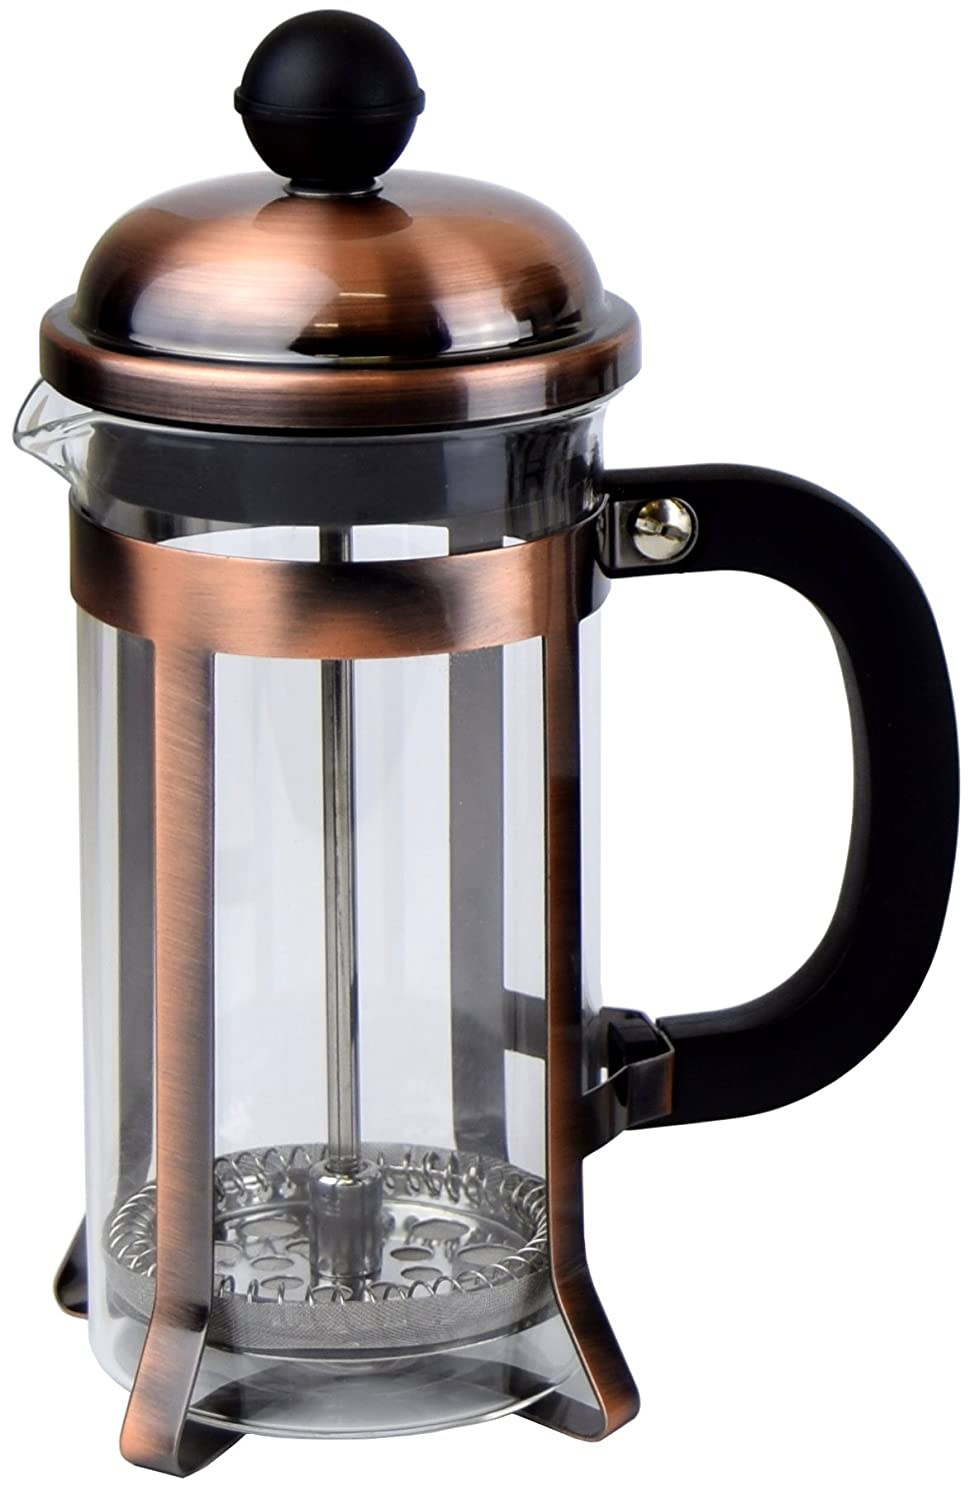 Coffee Press - Coffee Maker With Triple Filter System, 12 oz (350 ml) - Copper pcmam